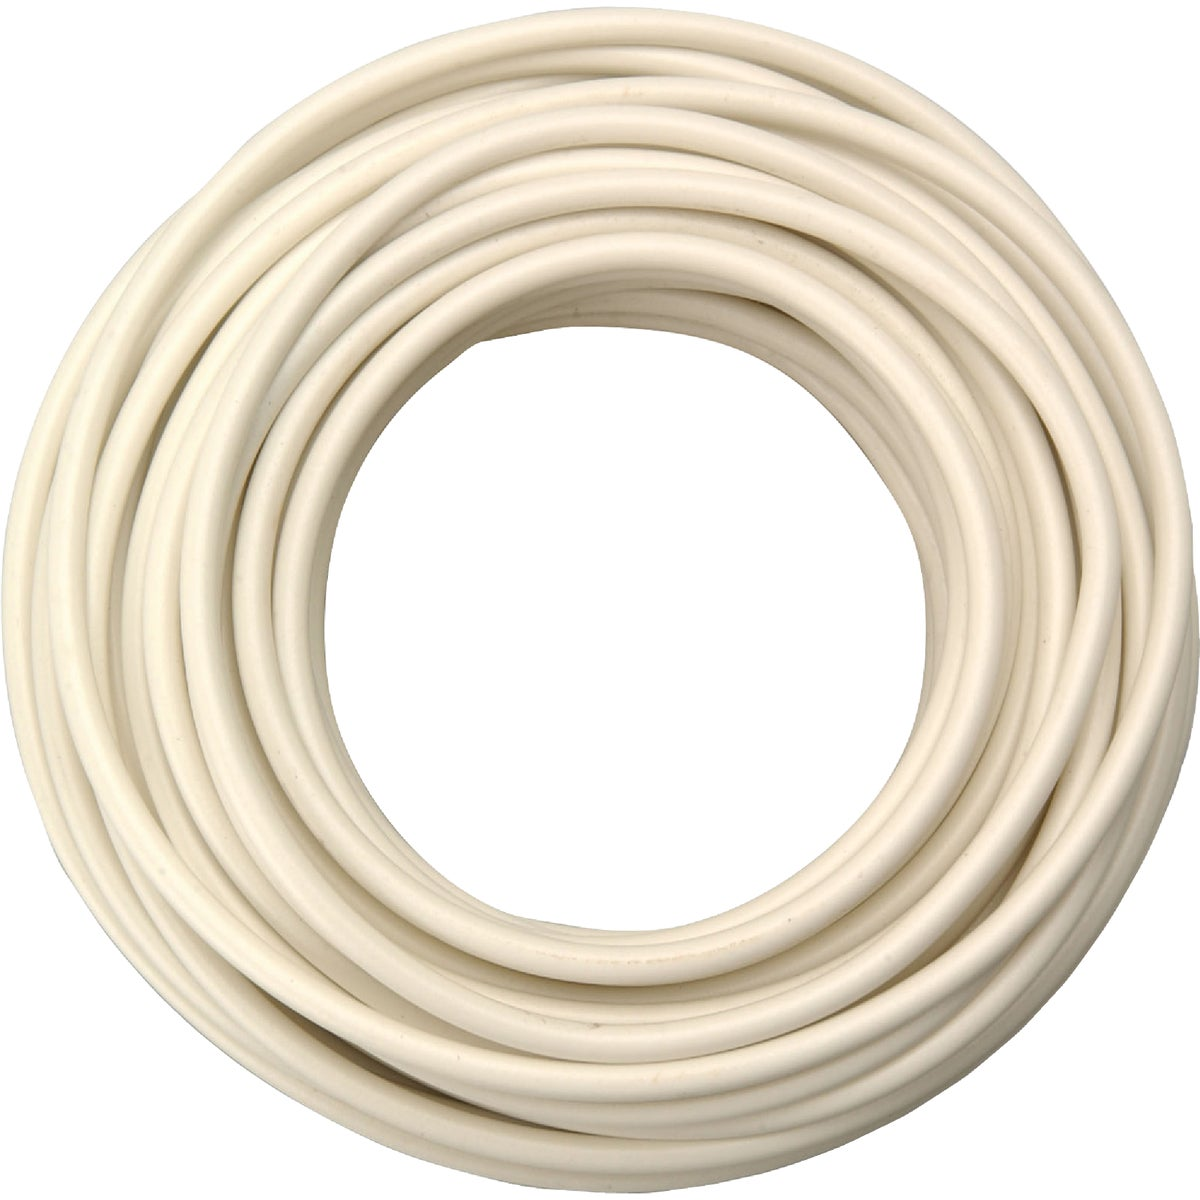 7' 10GA WHT AUTO WIRE - 10-1-17 by Woods Wire Coleman